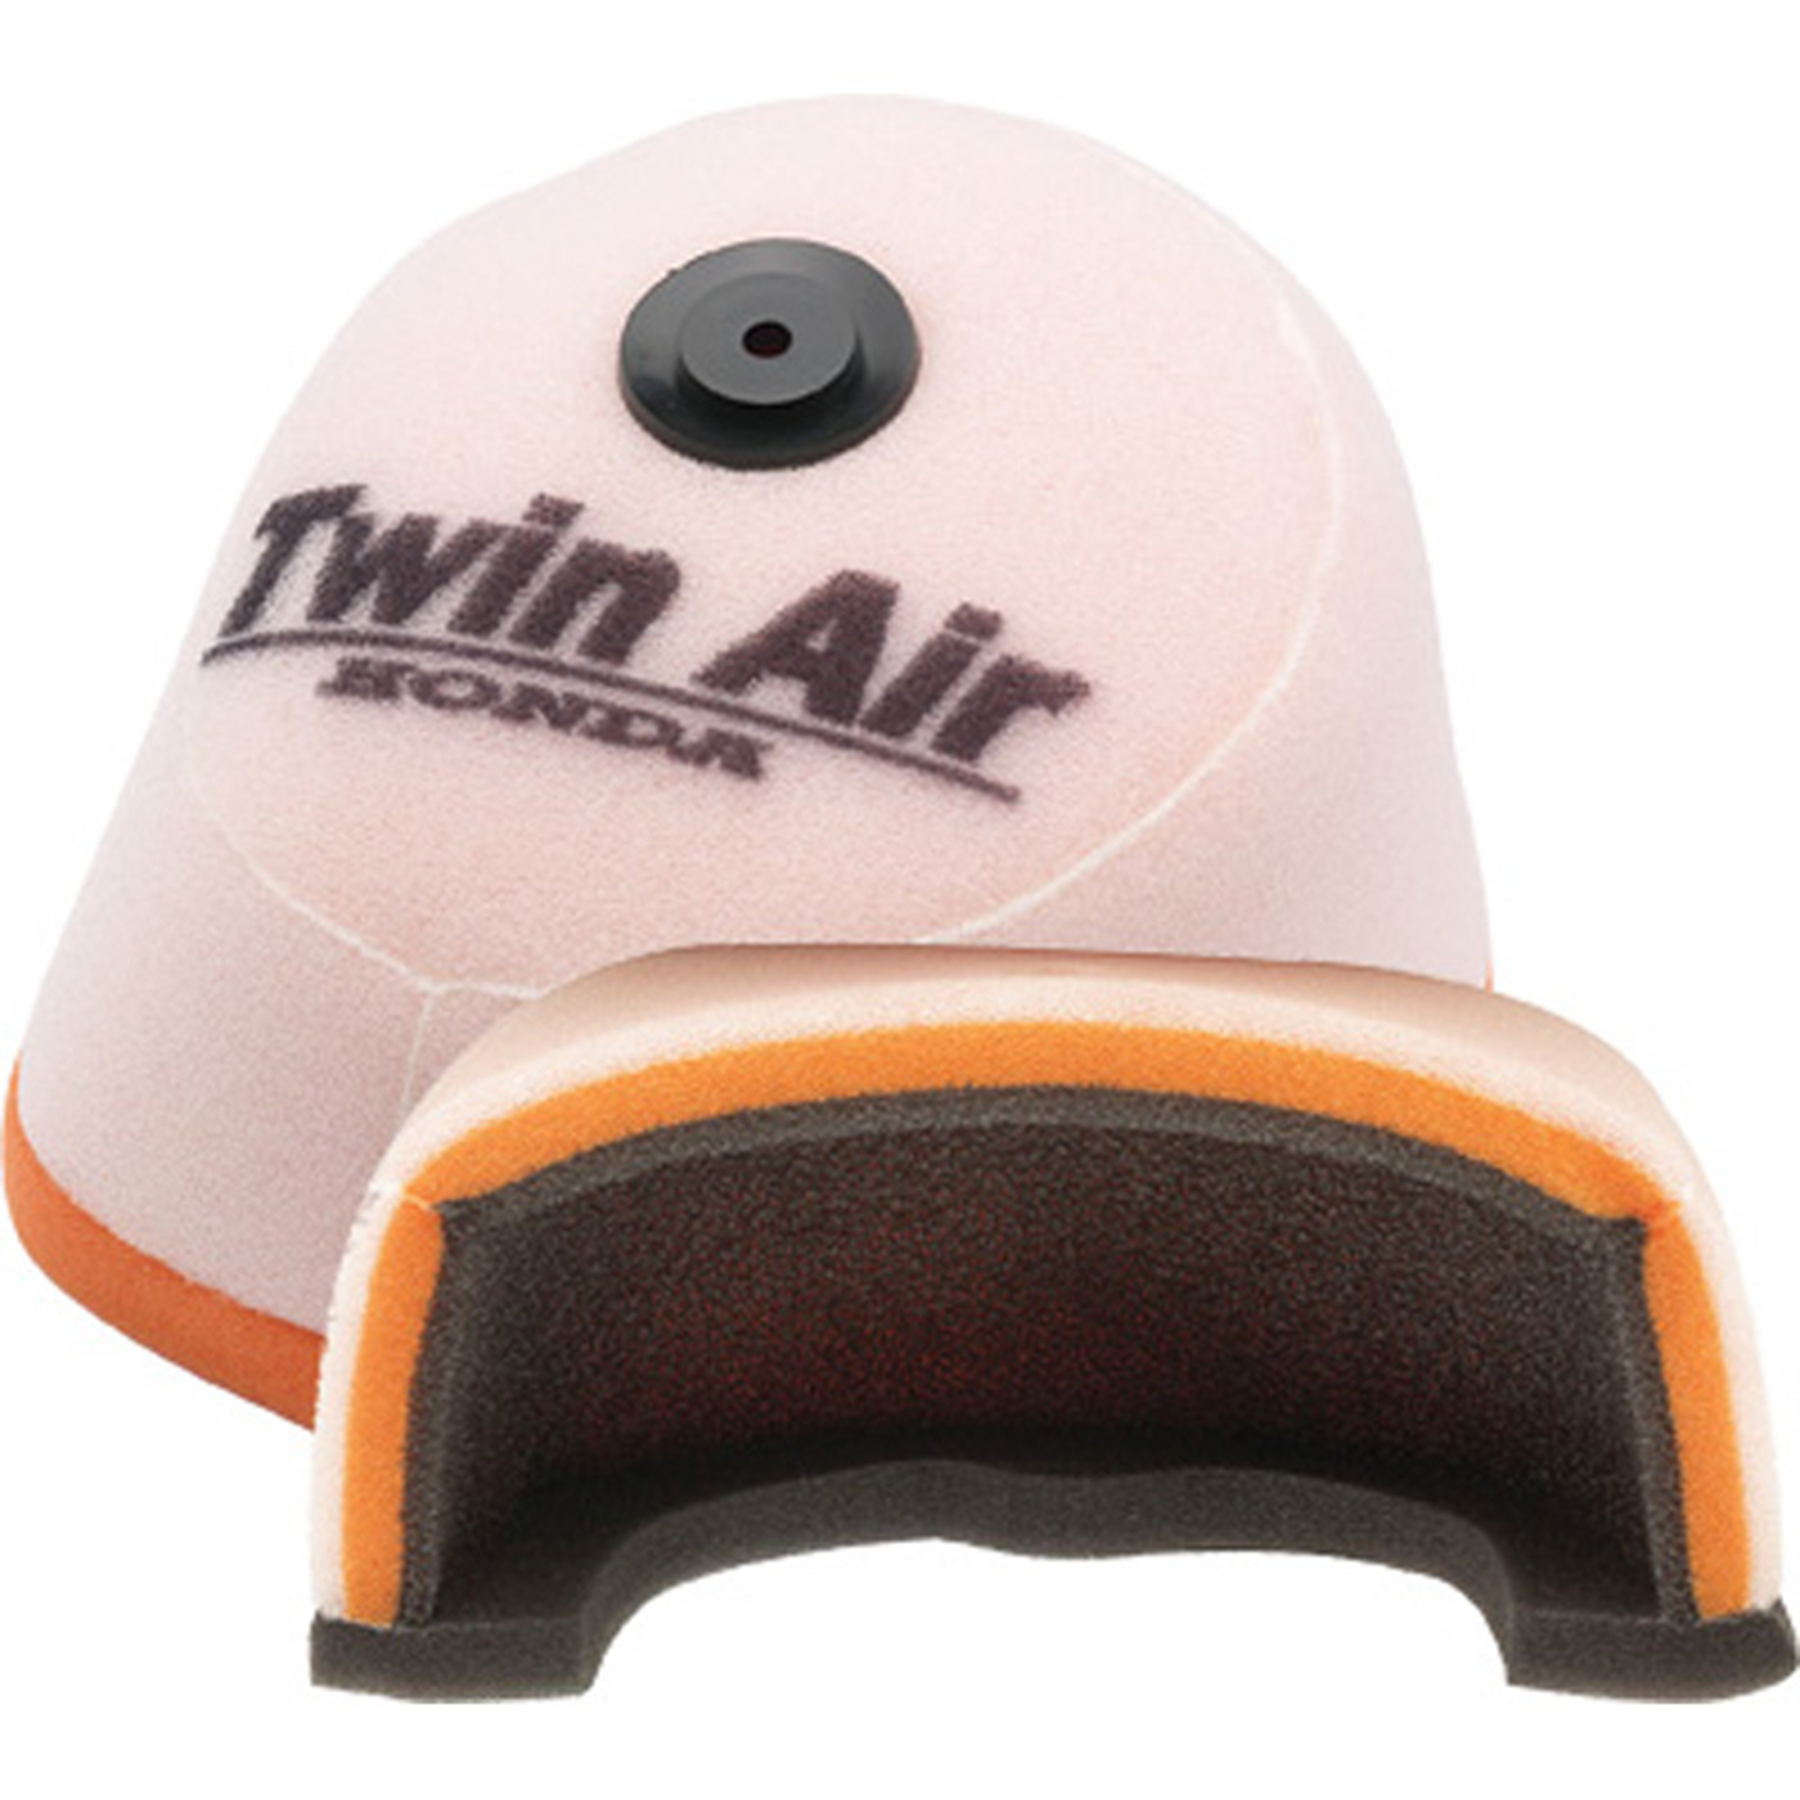 151334 Clamp On Air Filter Twin Air